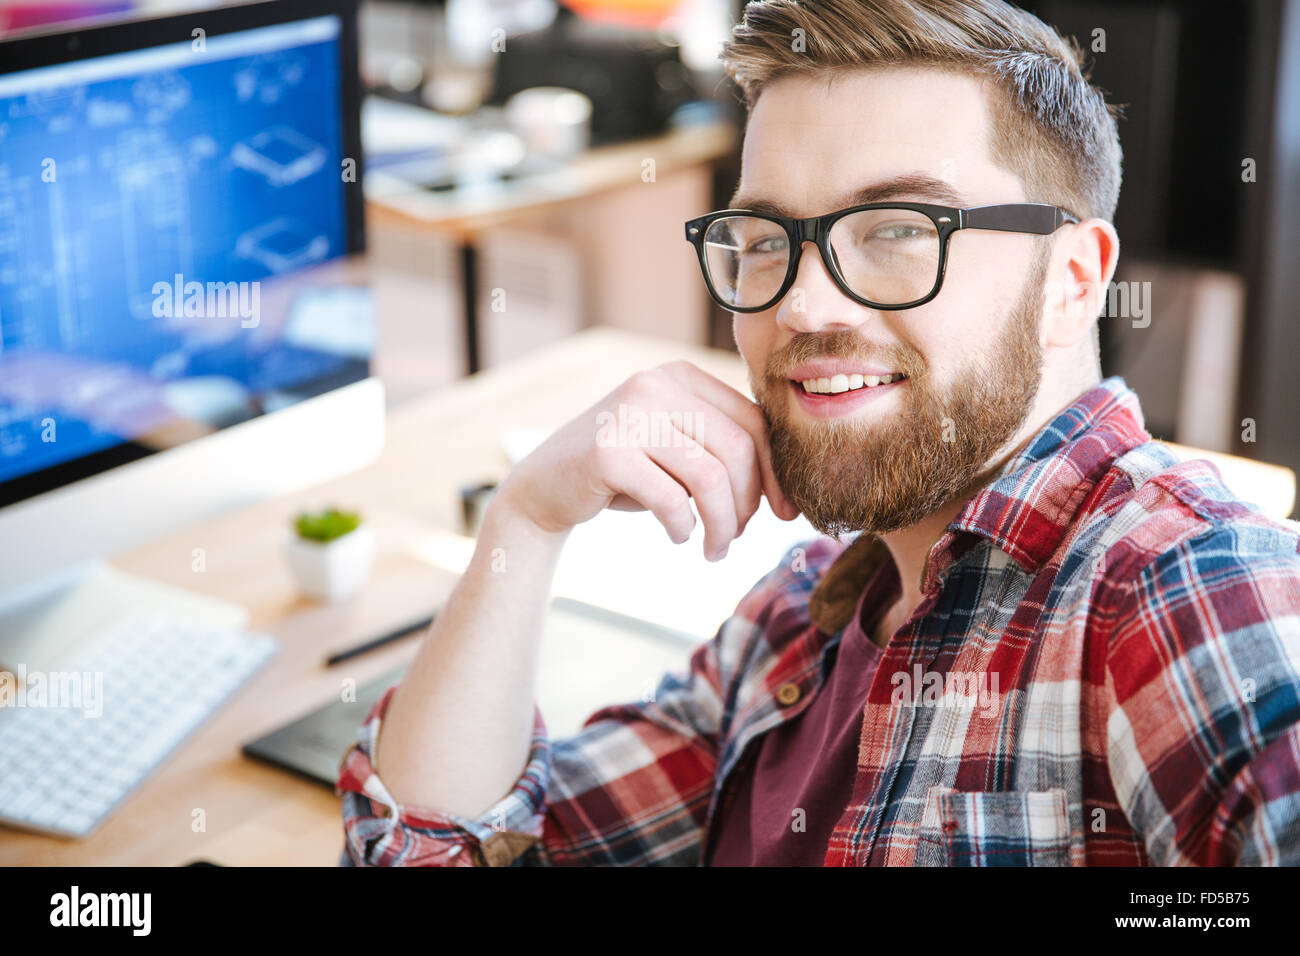 Happy attractive young man with beard in glasses working and designing project on his computer - Stock Image